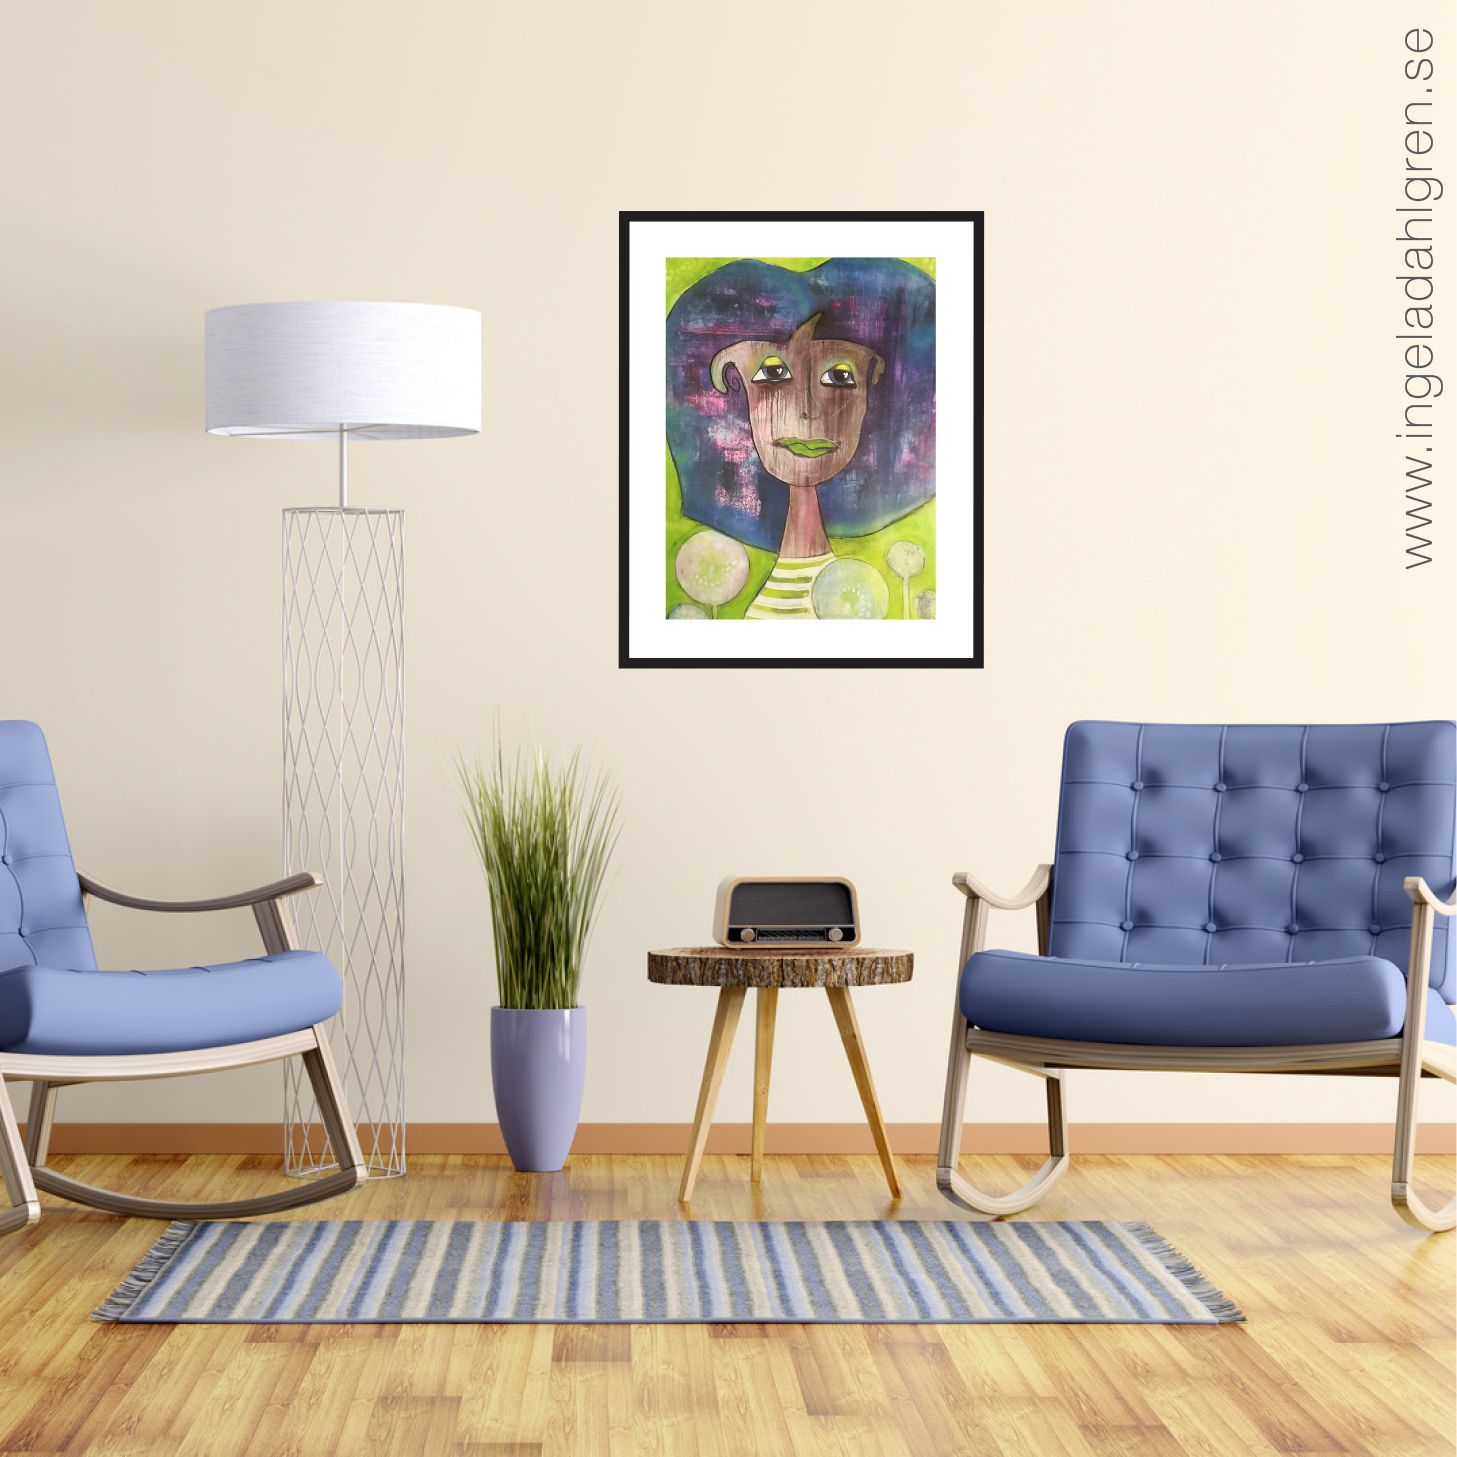 Dandelion Child - Artprint